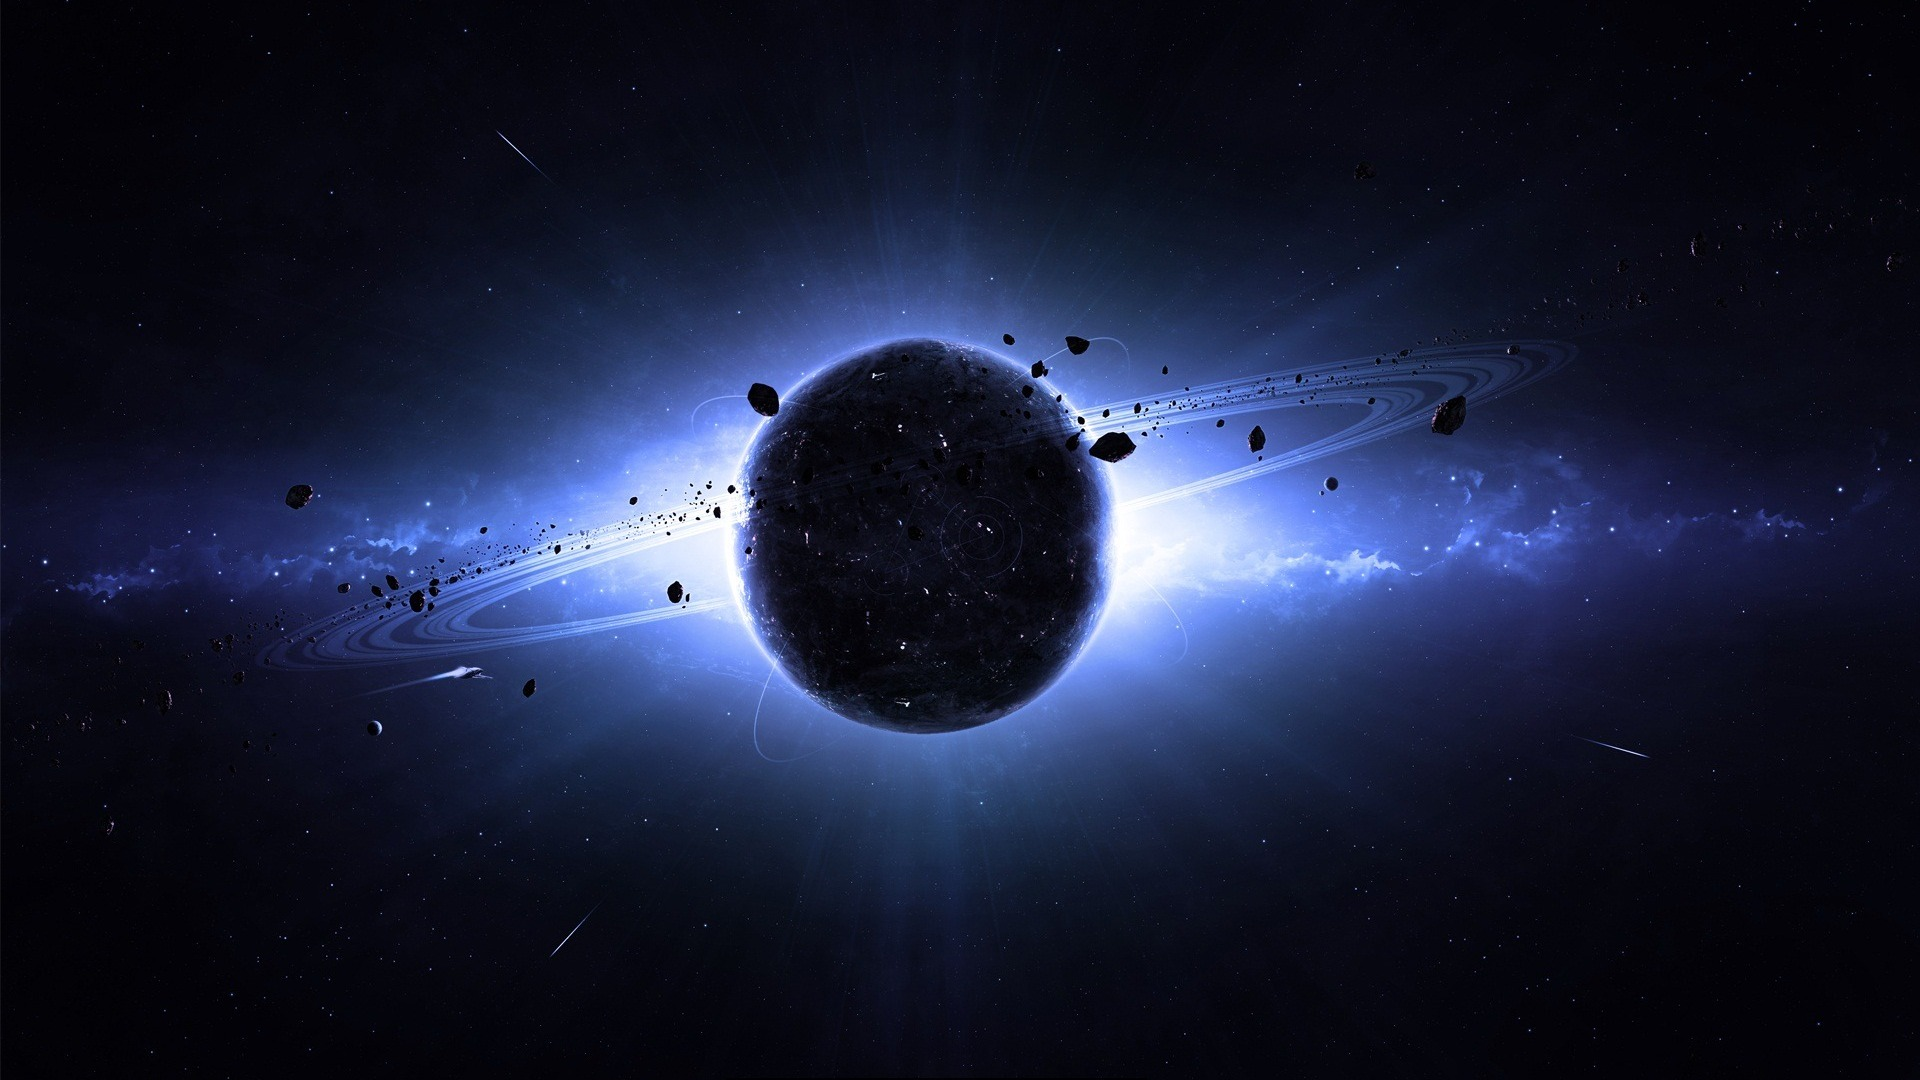 Space Wallpaper Hd 1920X1080 wallpaper   1245089 1920x1080